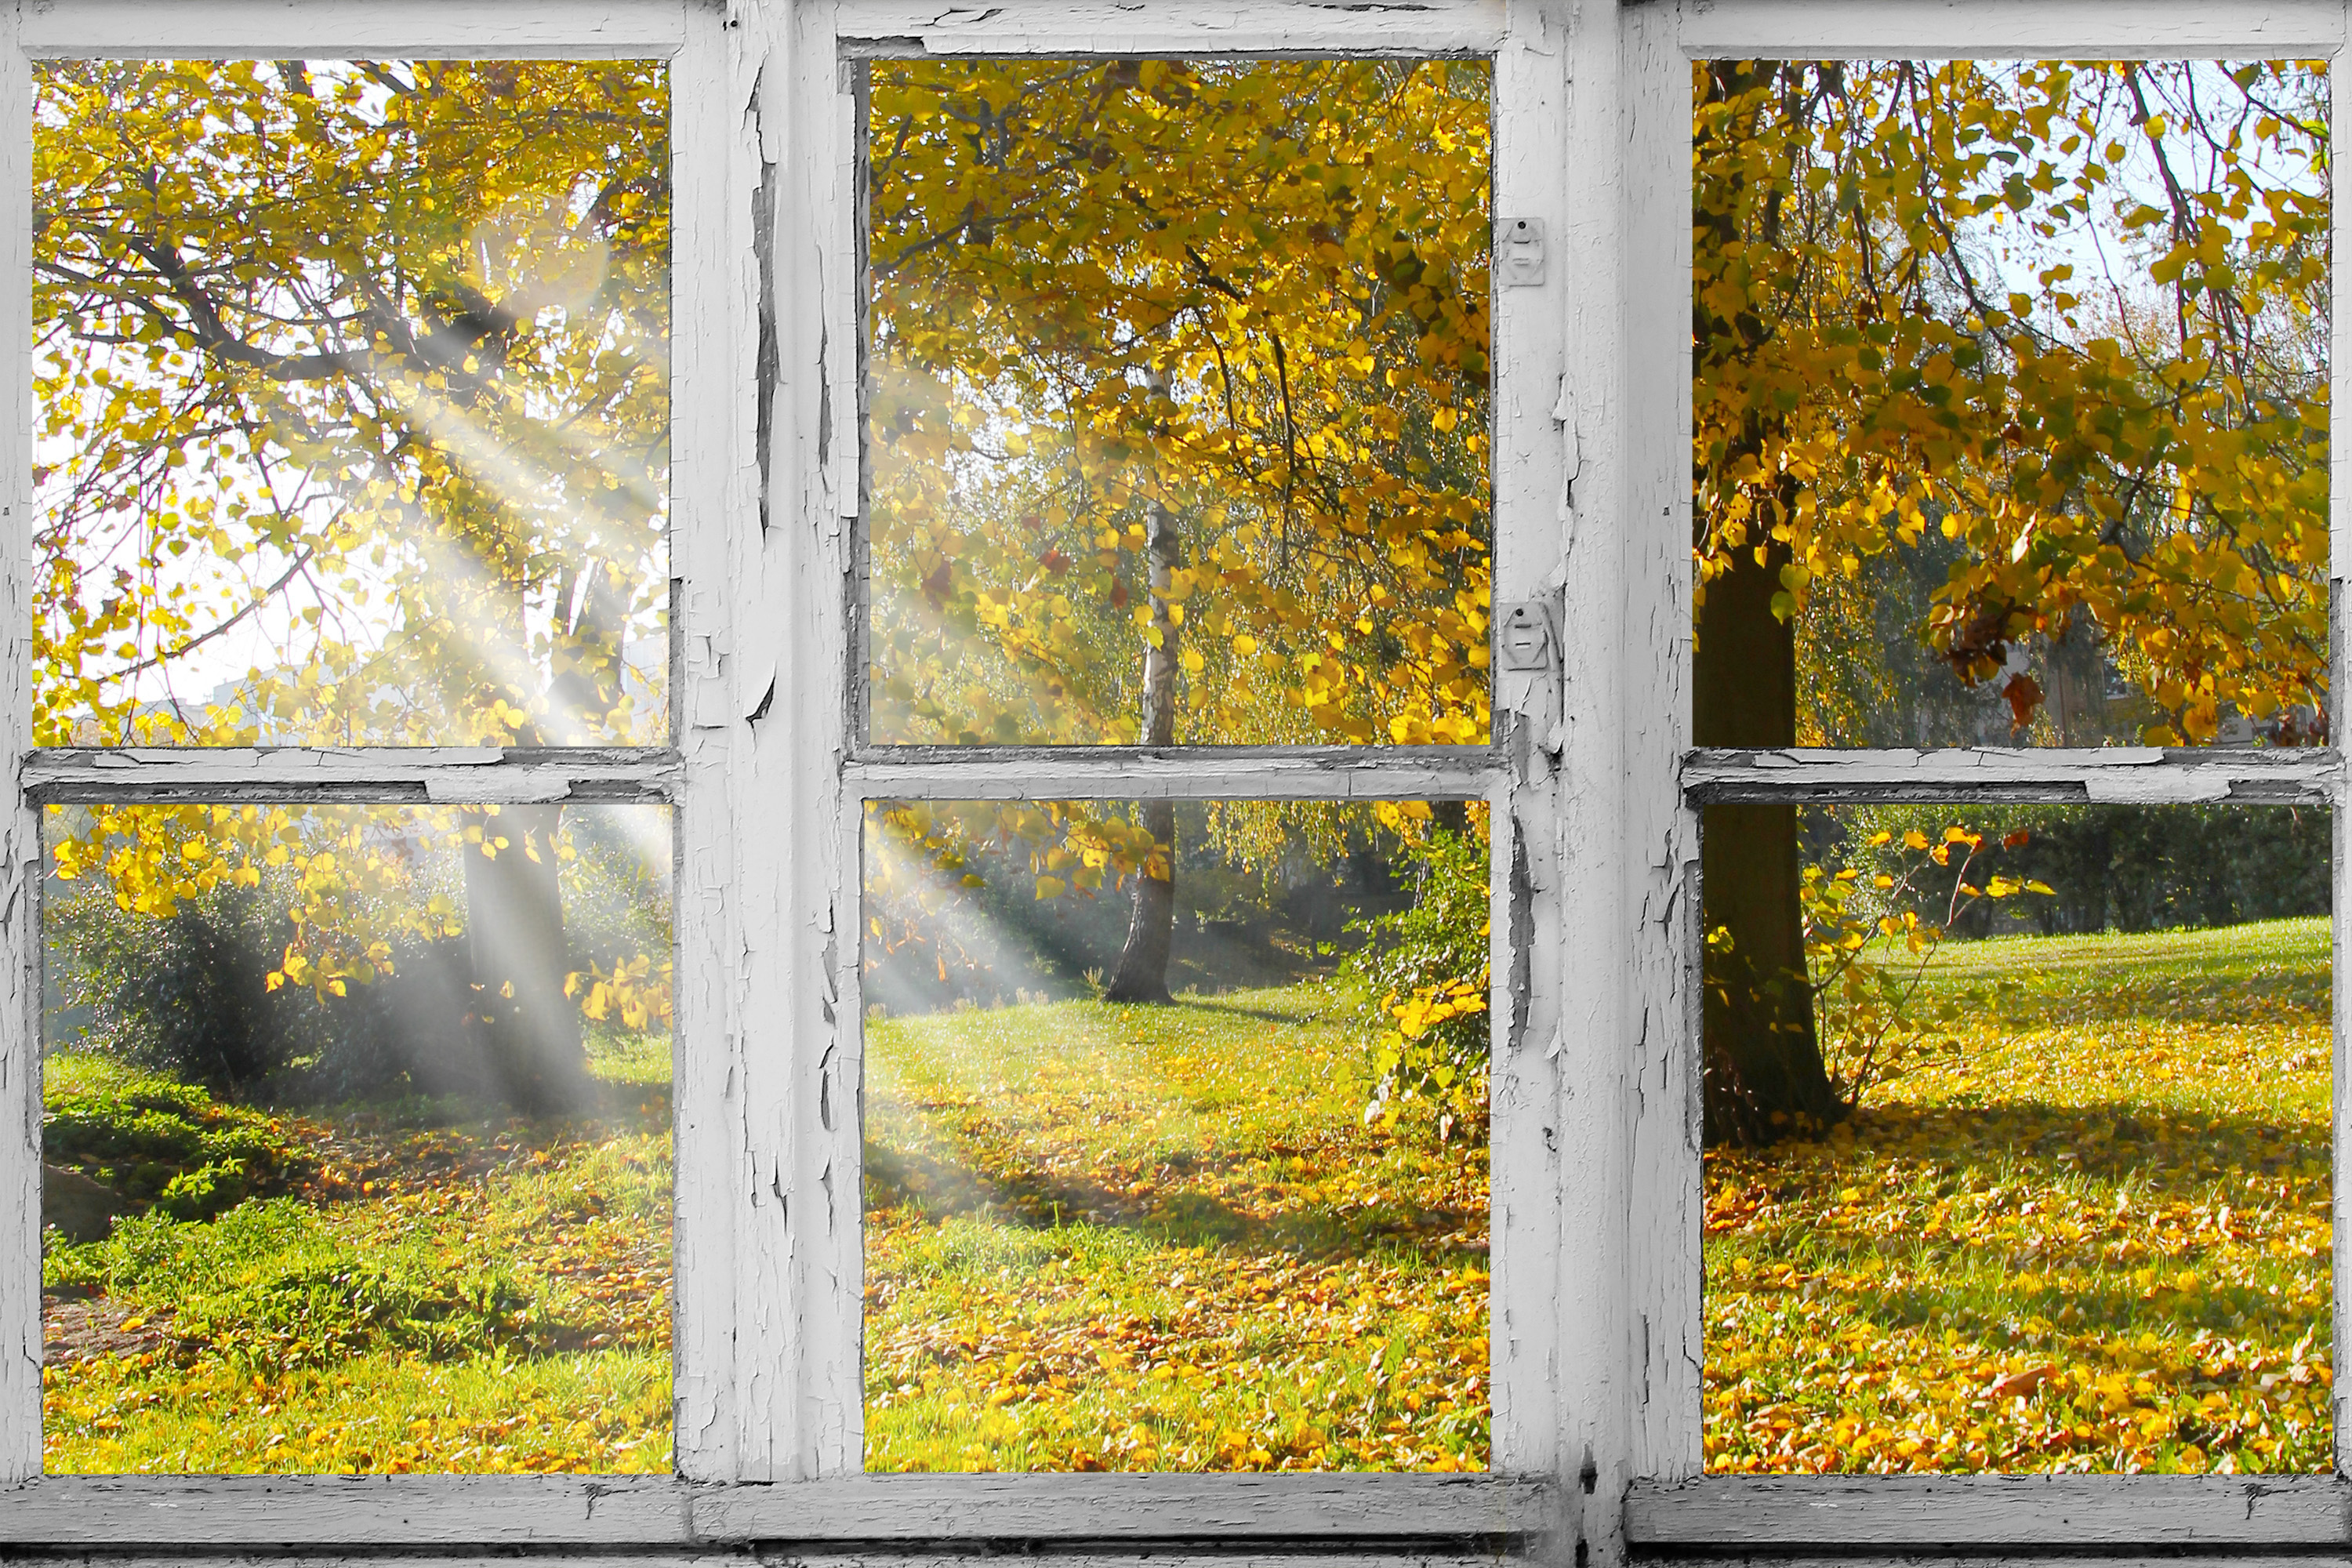 old Wooden window overlook autumn trees.